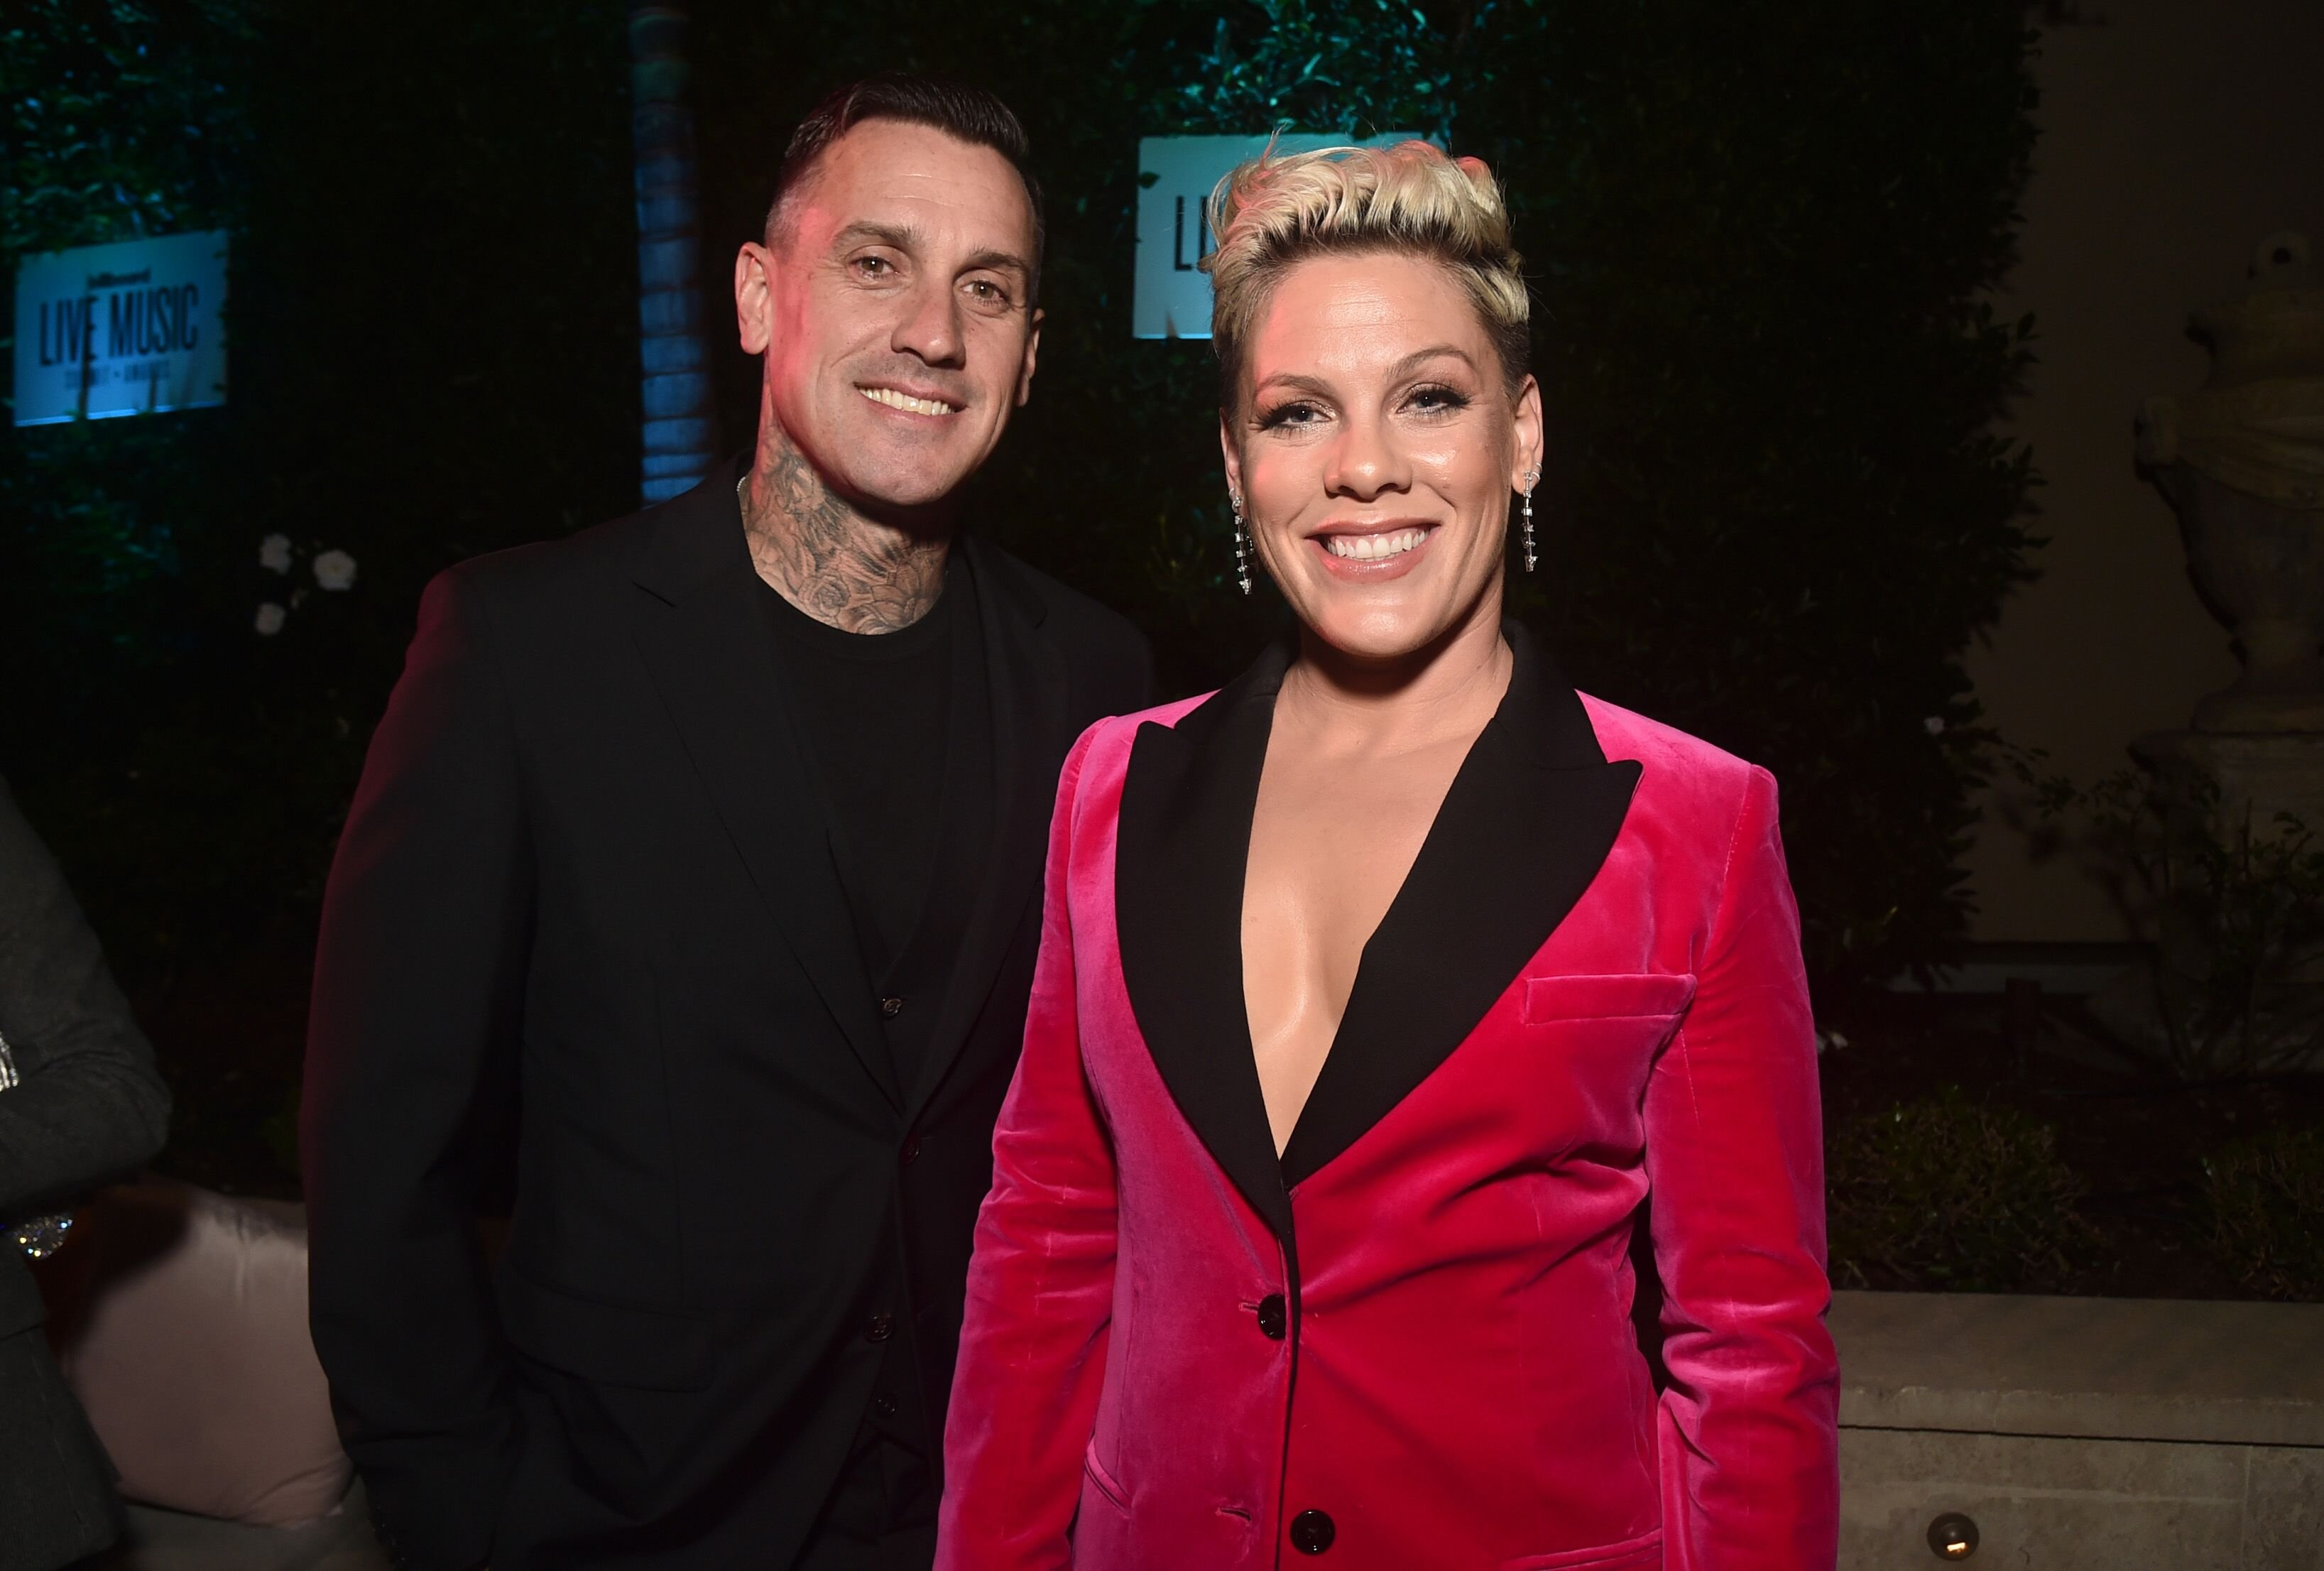 Carey Hart and Pink attend Billboard's 2019 LIve Music Summit and Awards Ceremony at the Montage Hotel on November 05, 2019 | Photo: Getty Images